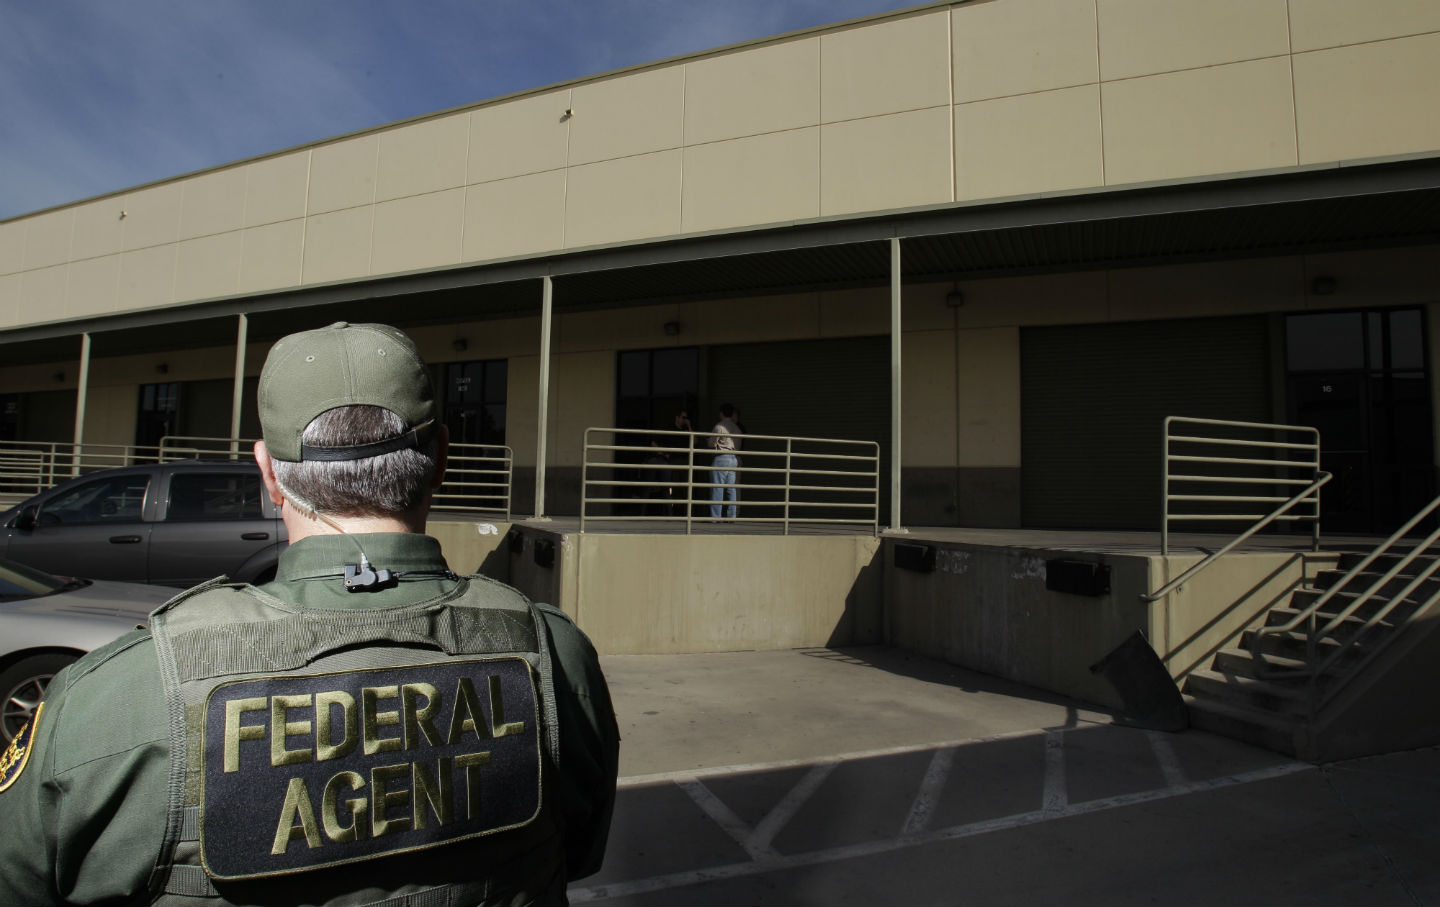 A federal agent stands outside of a building in San Diego, CA.